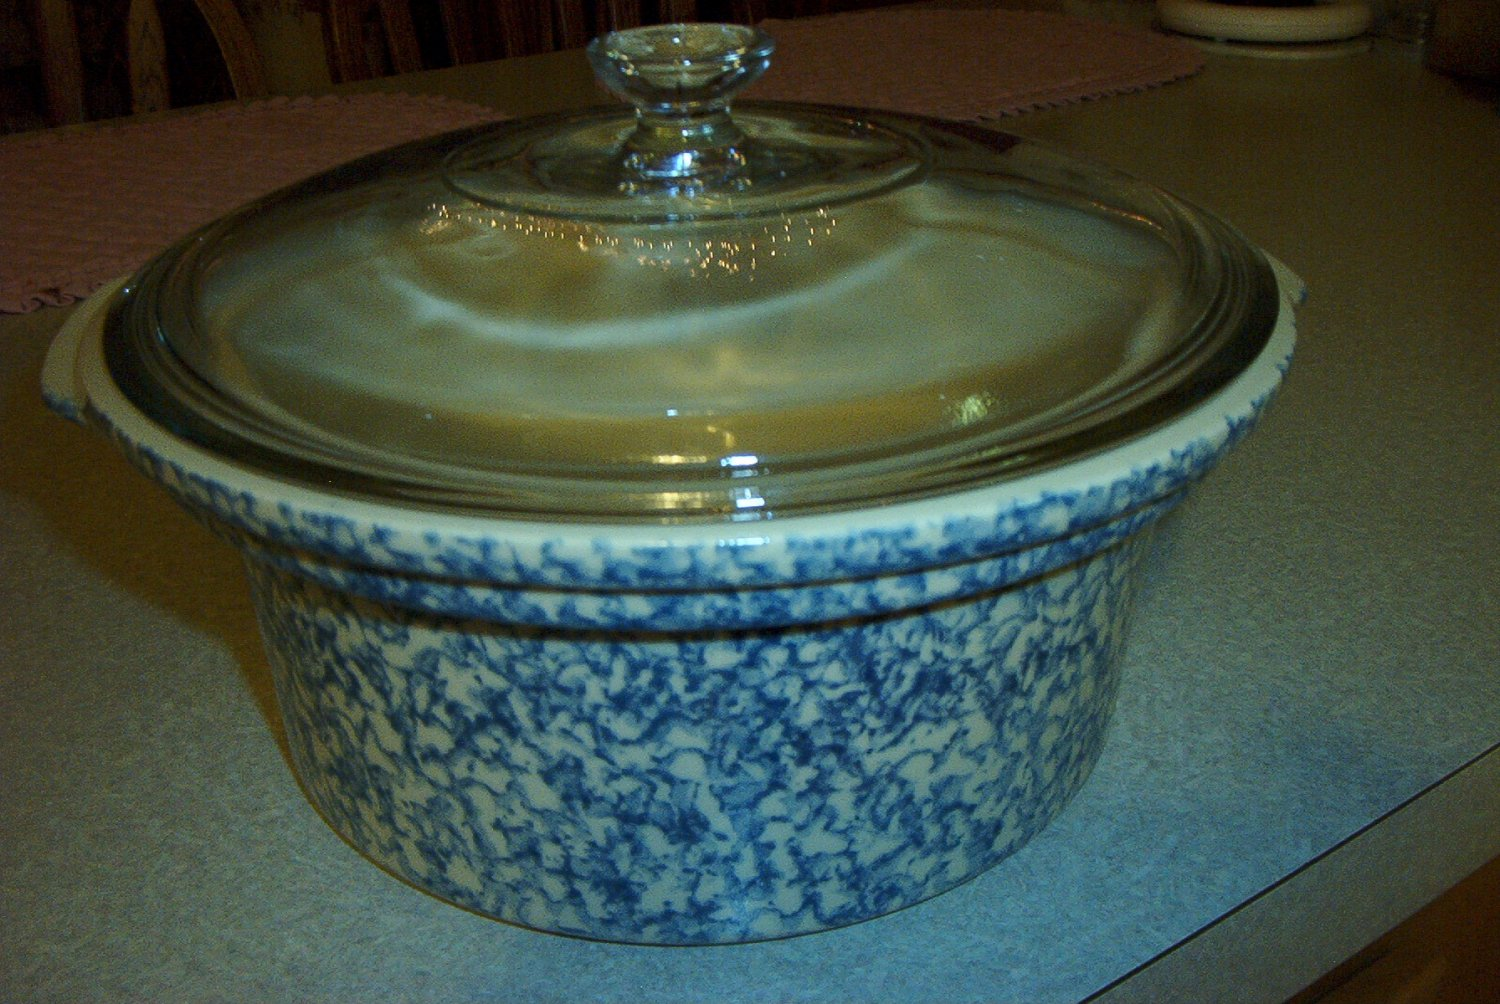 Henn Workshops  blue sponged 2 quart casserole (crock pot)